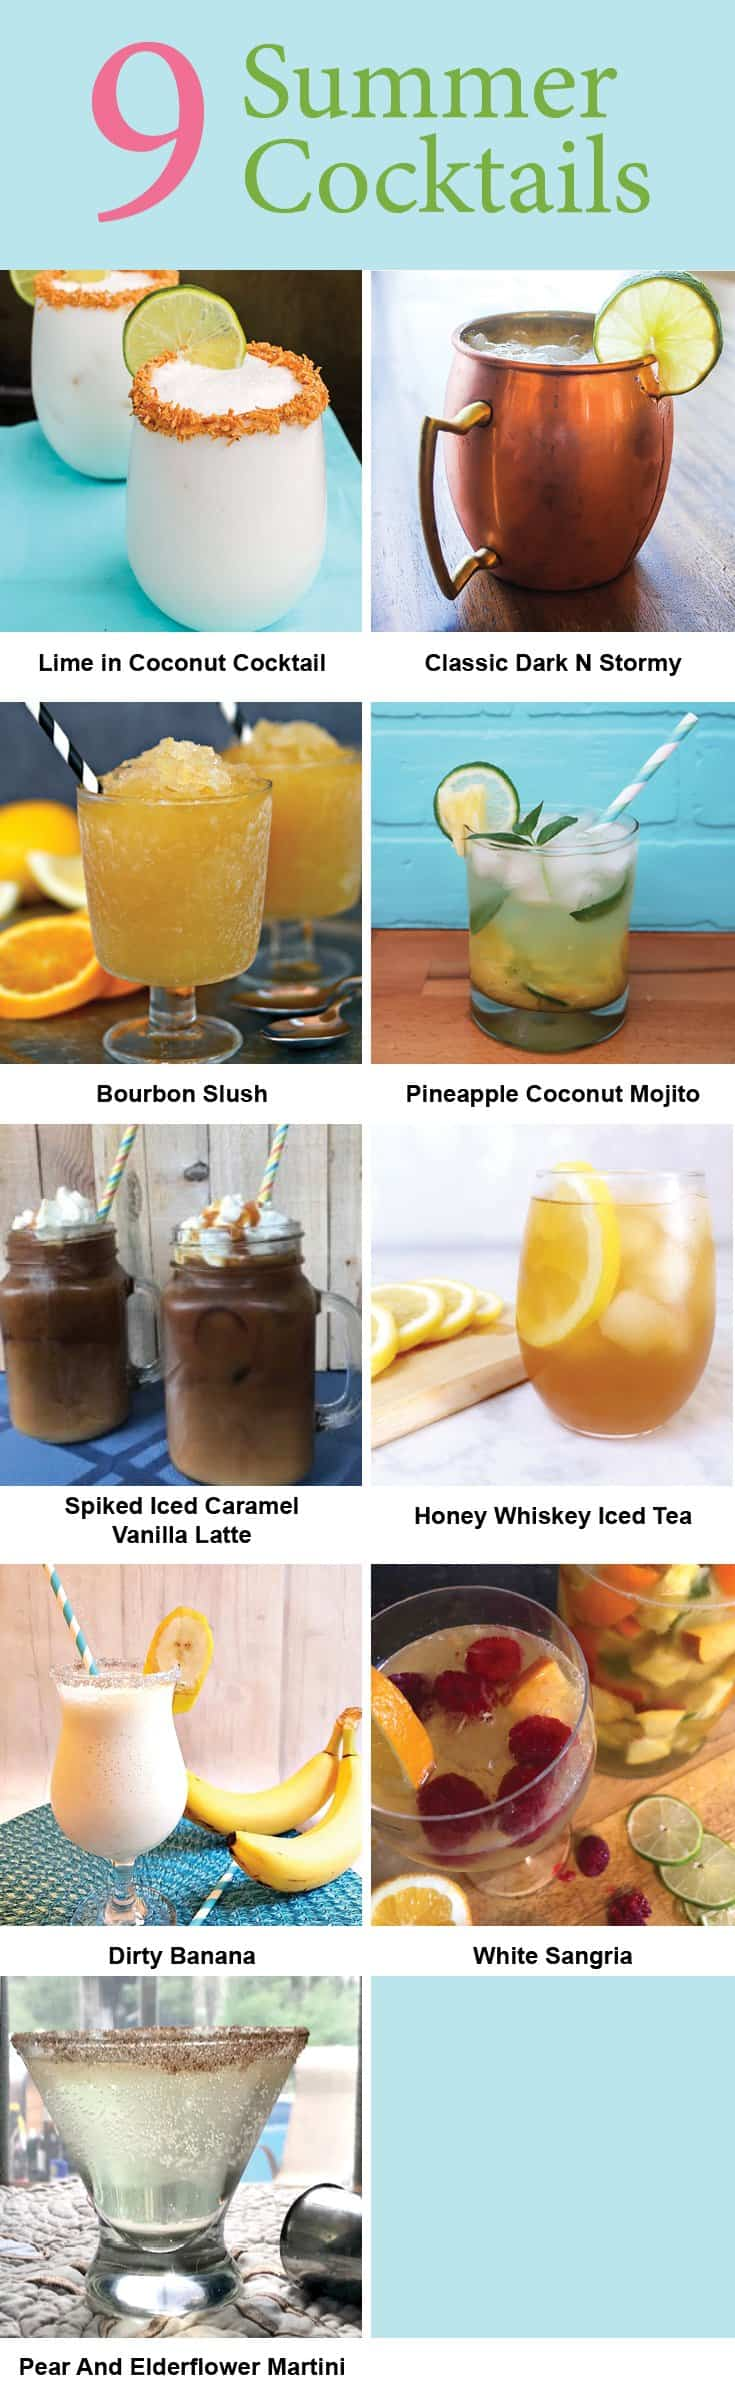 9 summer cocktails